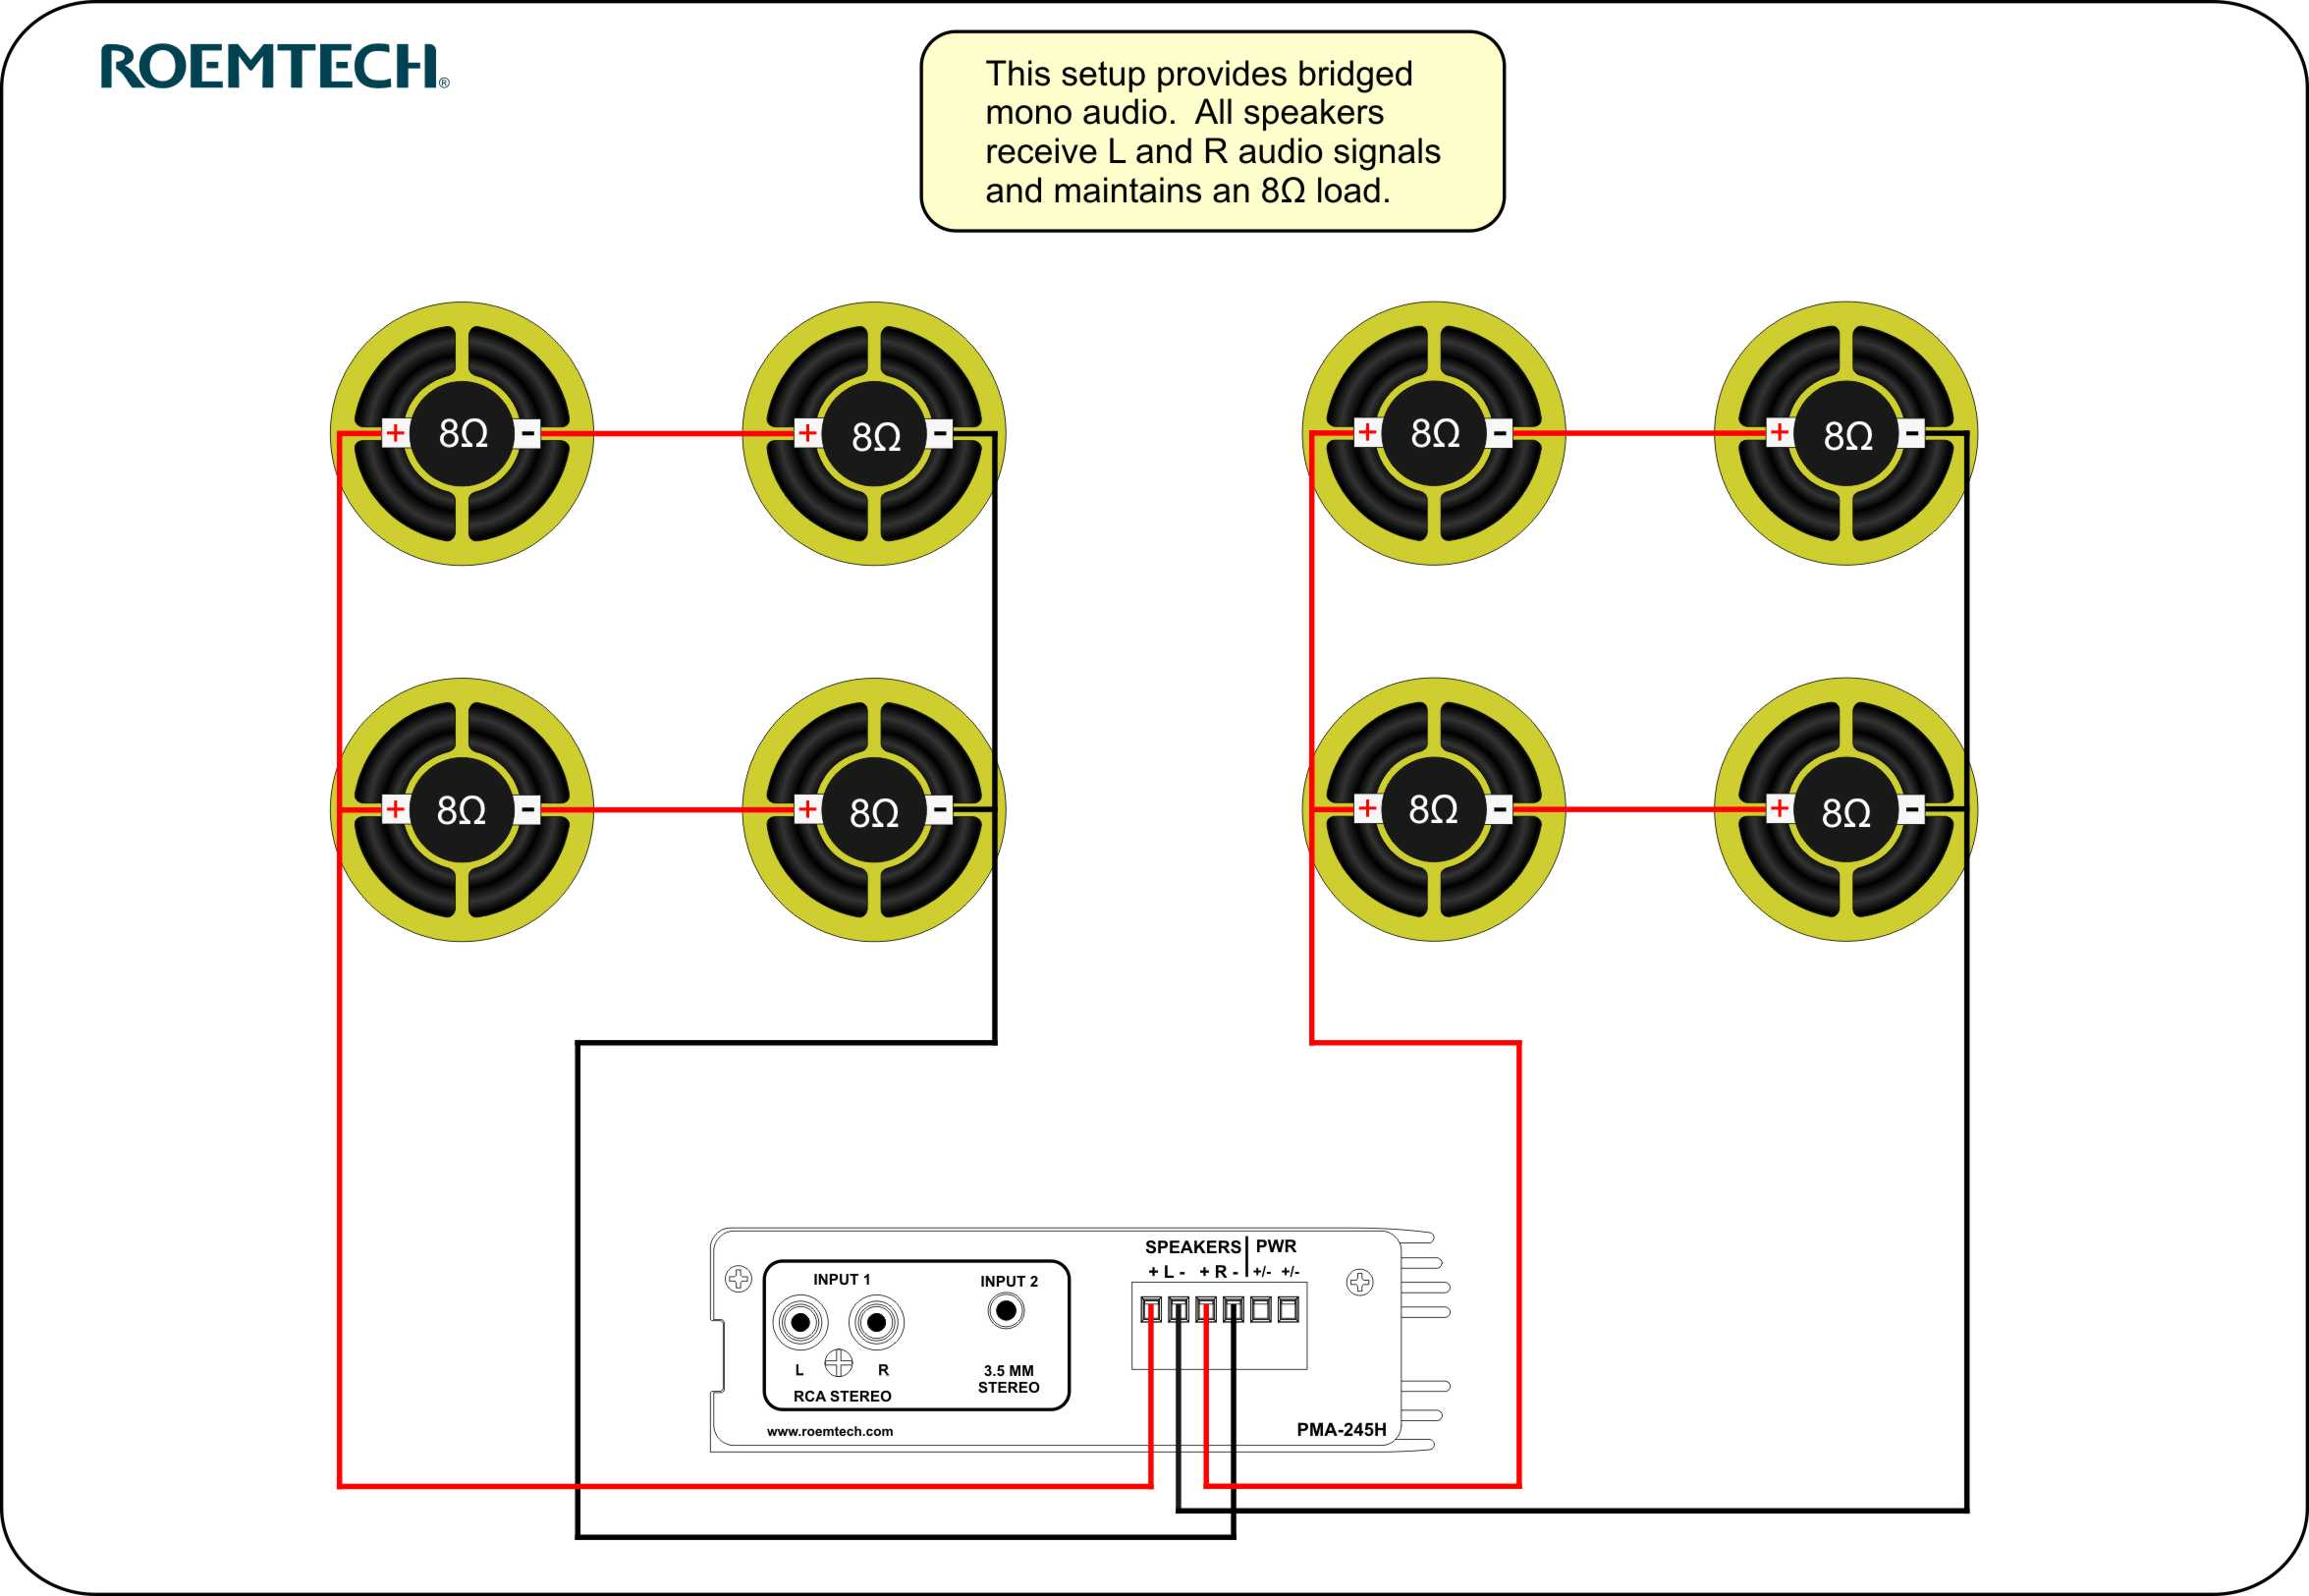 classroom_audio_multiple_speaker classroom audio systems multiple speaker wiring diagram loudspeaker wiring diagram at panicattacktreatment.co